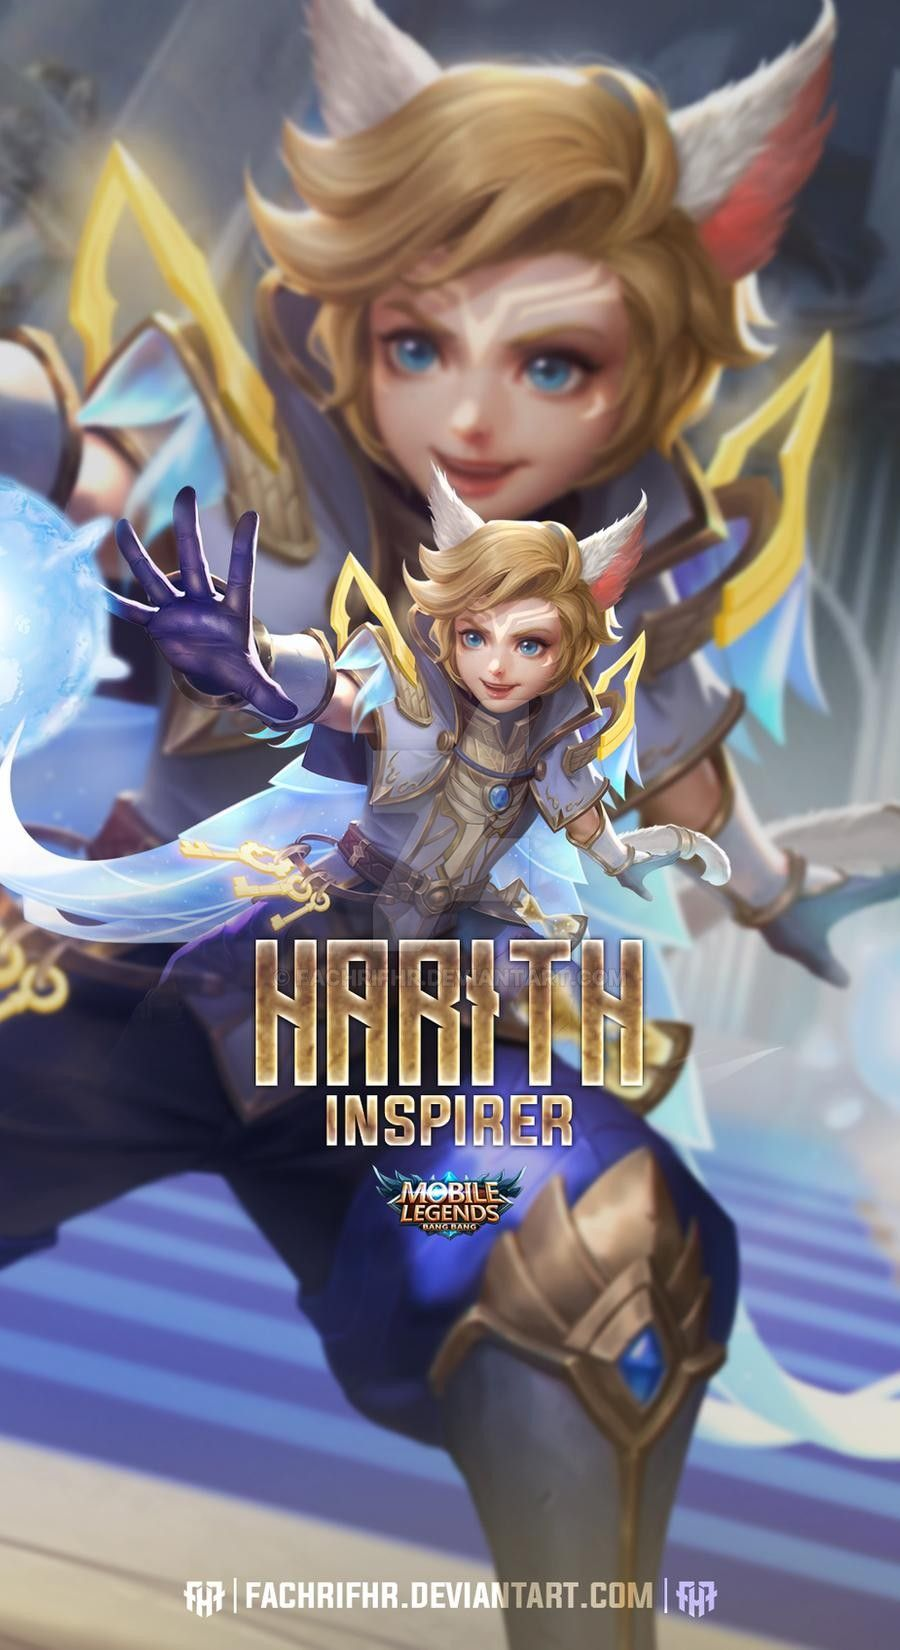 Harith Lightborn Inspirer By Fachrifhr On Deviantart In 2020 Mobile Legend Wallpaper Miya Mobile Legends Alucard Mobile Legends